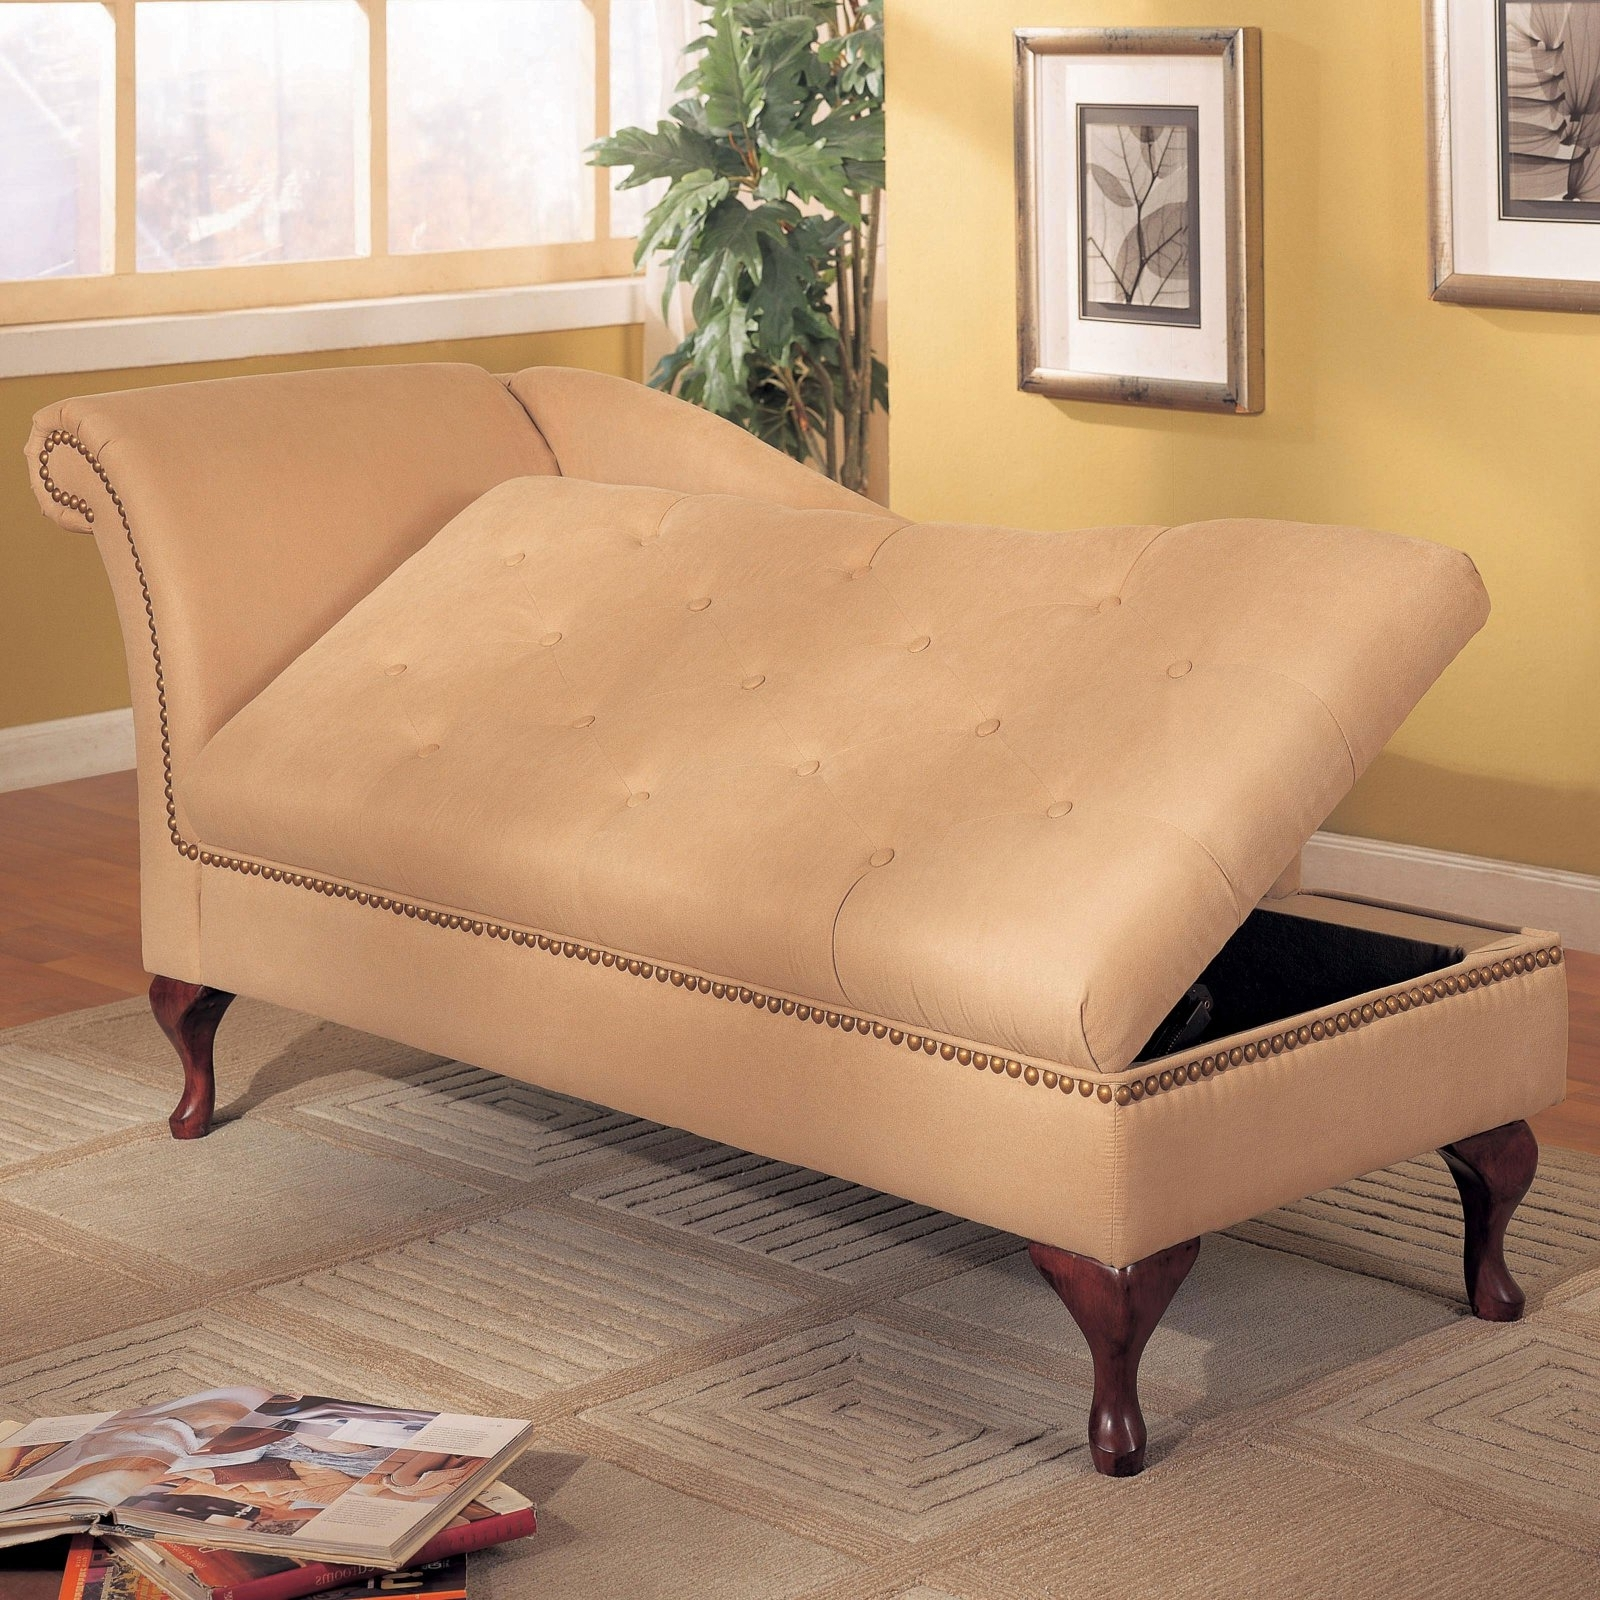 2018 Small Chaise Lounges With Small Bedroom Chaise Lounge Chairs • Lounge Chairs Ideas (View 2 of 15)